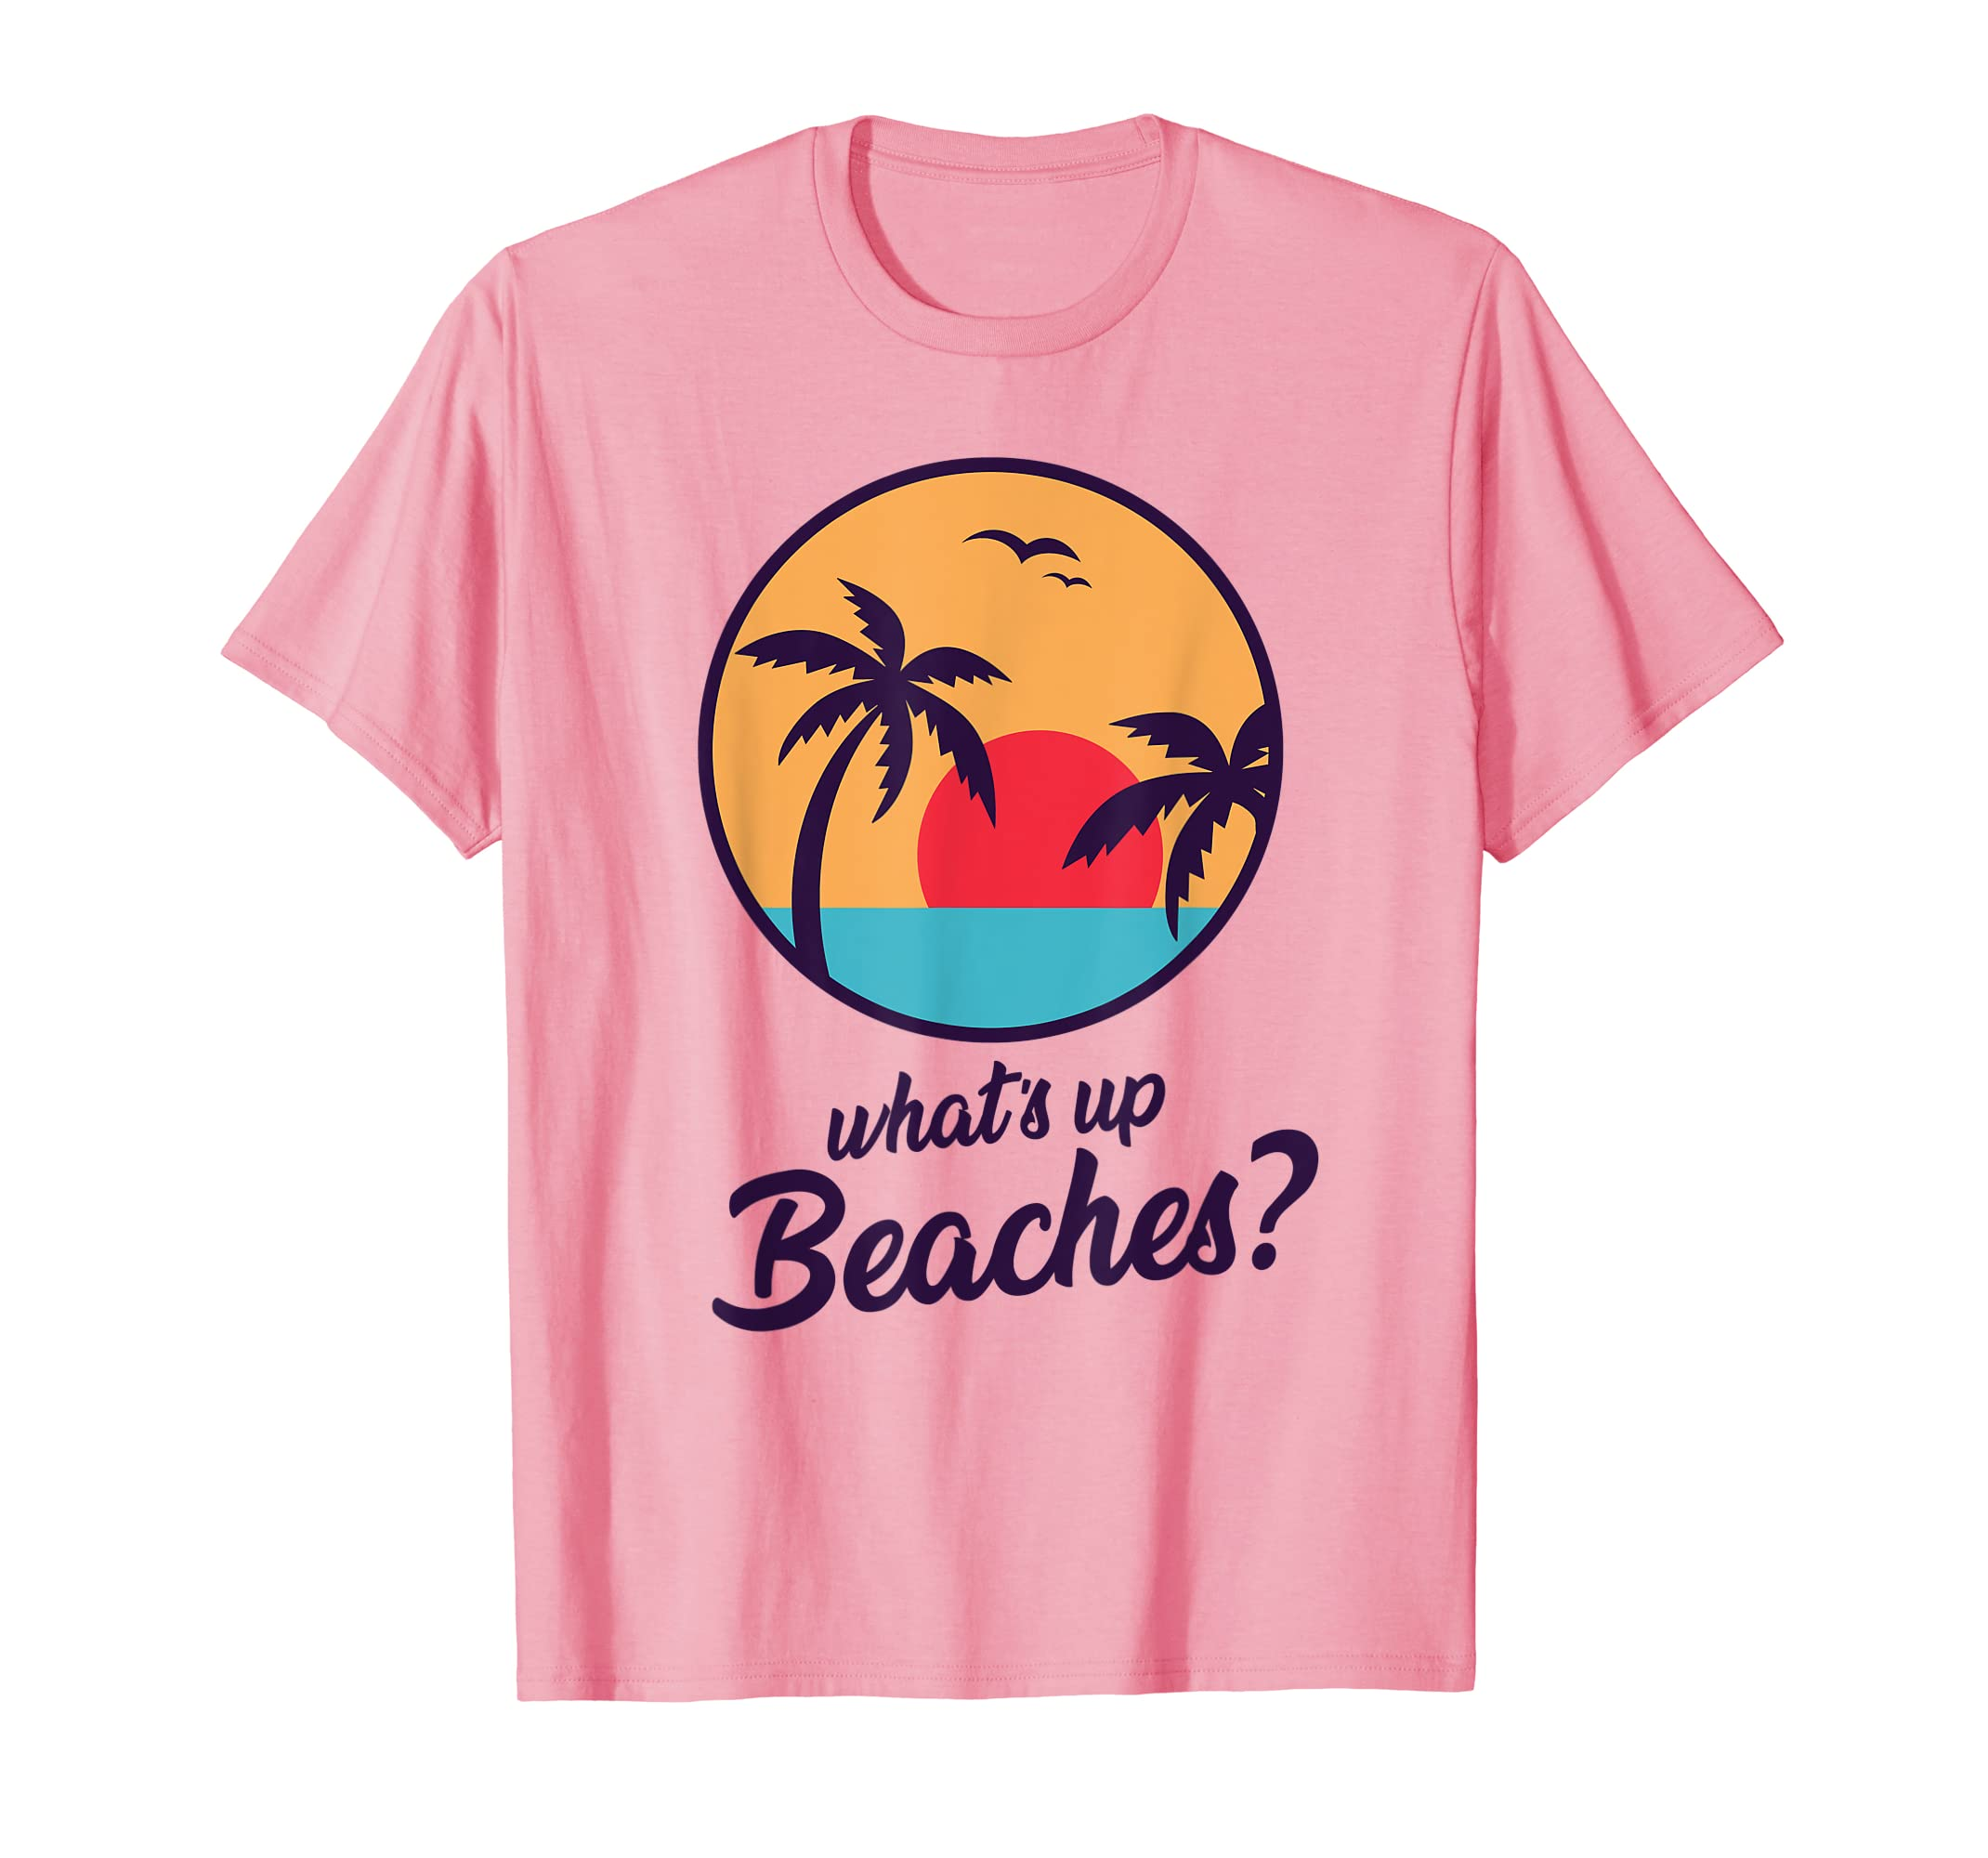 bafdc4af5 Amazon.com: Whats Up Beaches T Shirt | Brooklyn Fine Nice Pink Tshirt:  Clothing